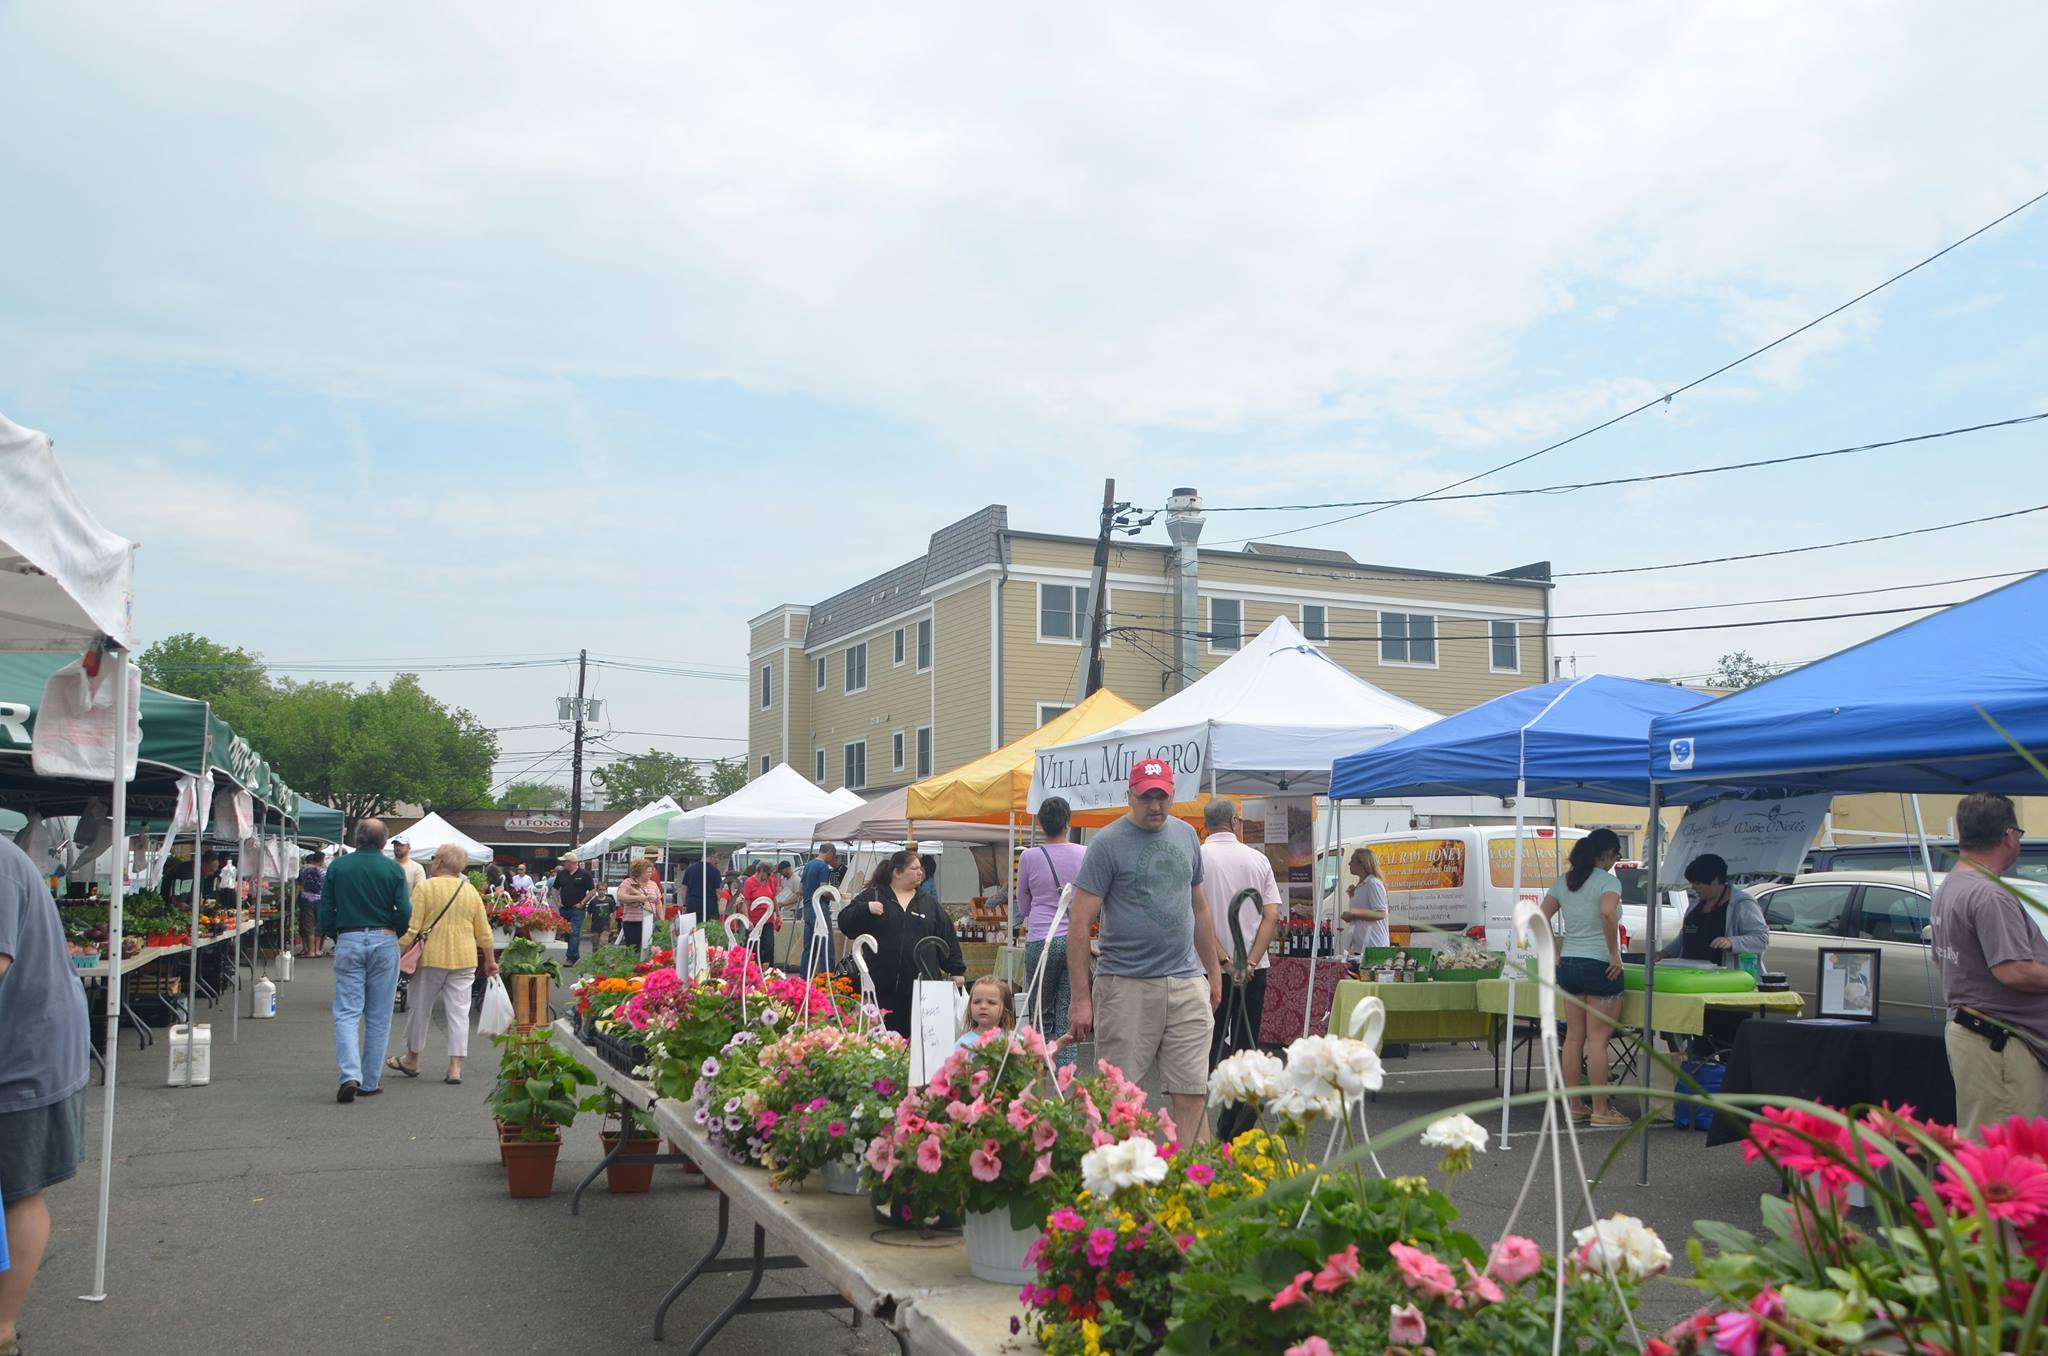 c870c2968cf5de3ce7d6_Scotch_Plains_Farmers_Market_photo.jpg